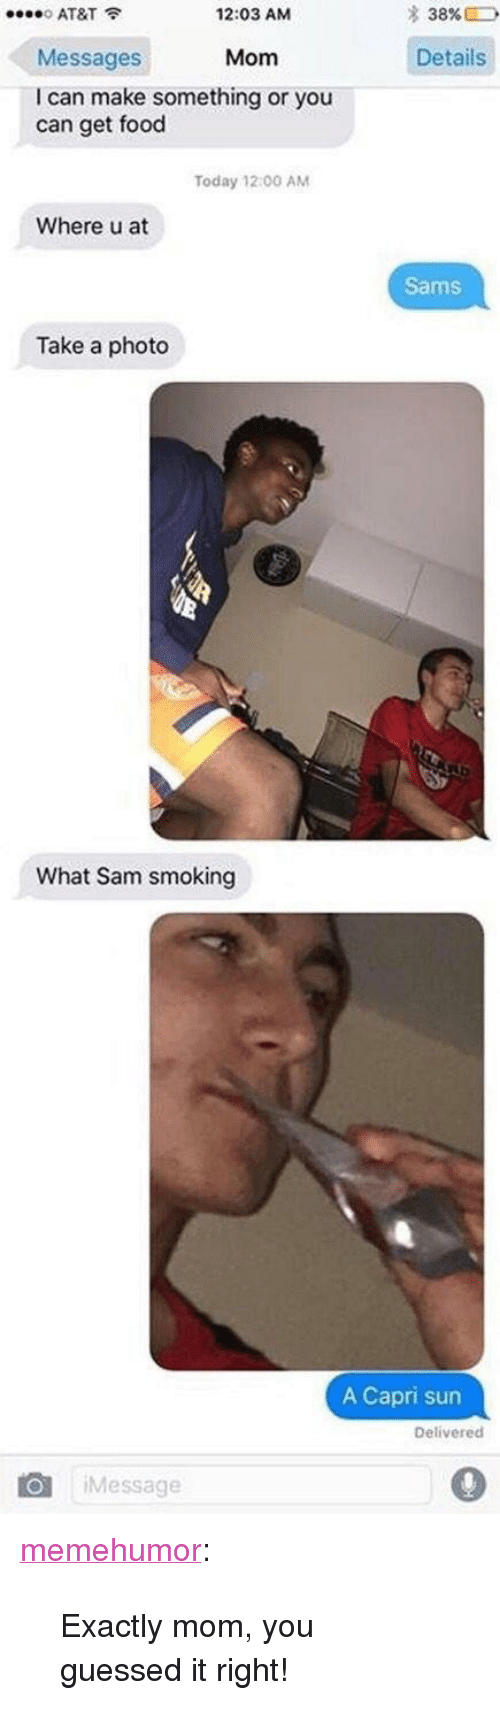 "Sams: AT&T  Messages  I can make something or you  12:03 AM  * 38%  Mom  Details  can get food  Today 12:00 AM  Where u at  Sams  Take a photo  What Sam smoking  A Capri sun  Delivered  Message <p><a href=""http://memehumor.net/post/171842669433/exactly-mom-you-guessed-it-right"" class=""tumblr_blog"">memehumor</a>:</p>  <blockquote><p>Exactly mom, you guessed it right!</p></blockquote>"